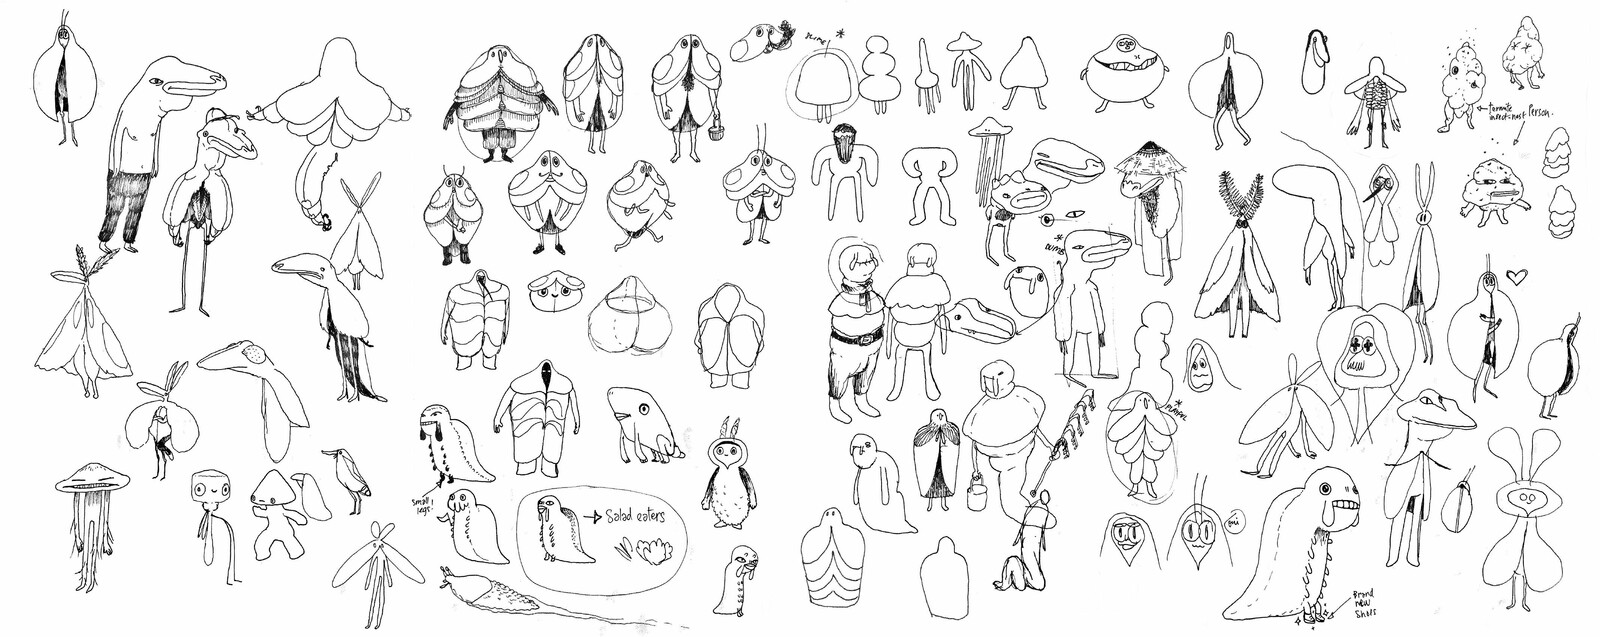 As a process, I always start with simple sketches.